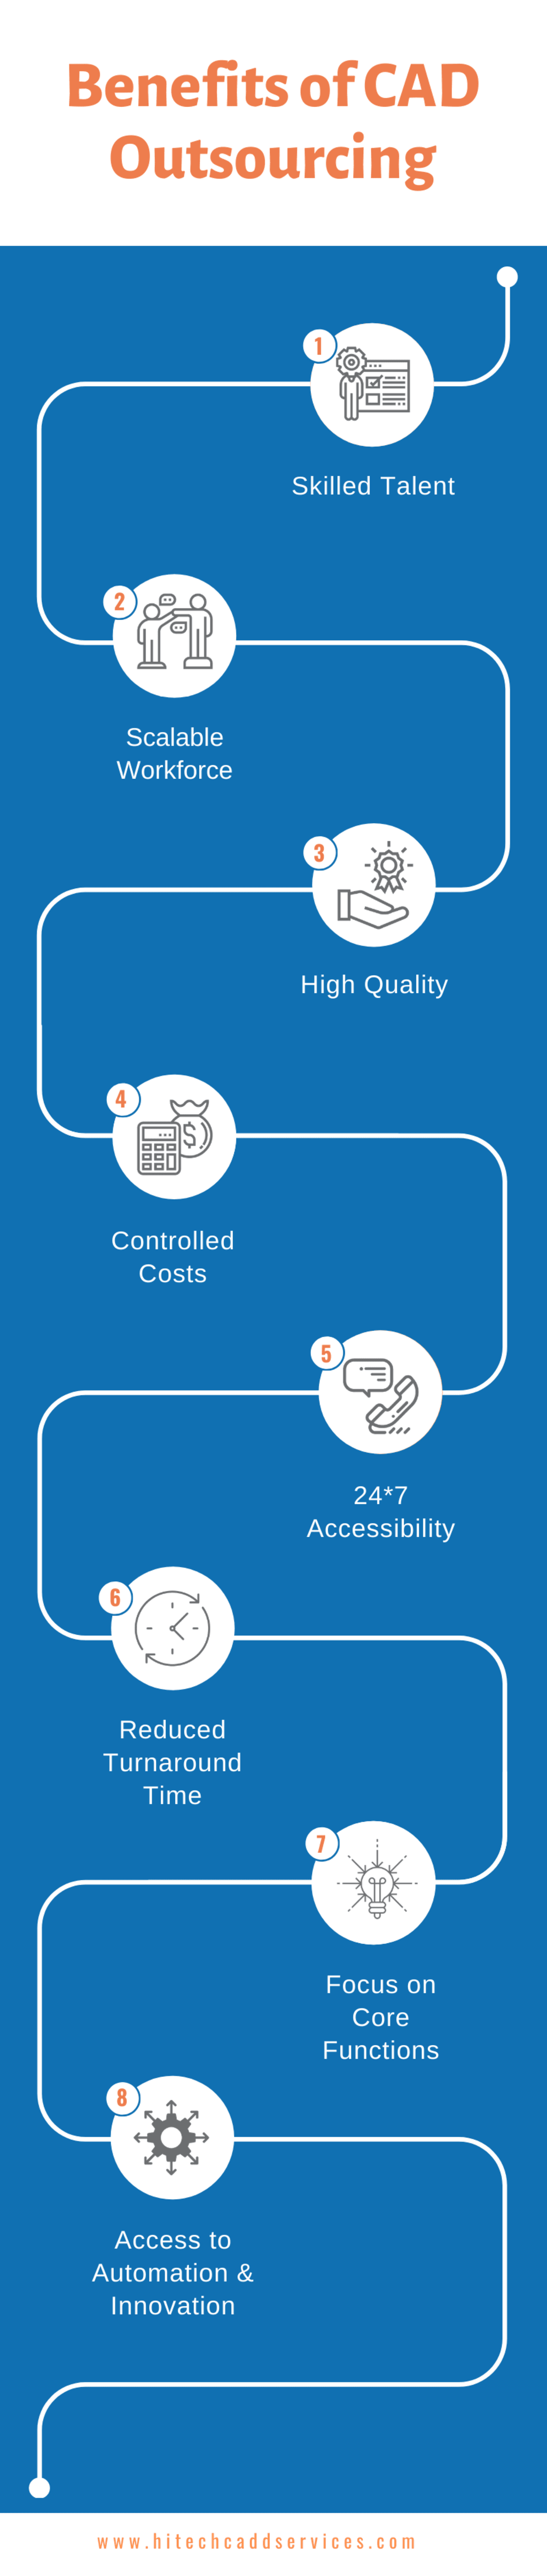 Benefits of CAD Outsourcing via Hitech CADD Services